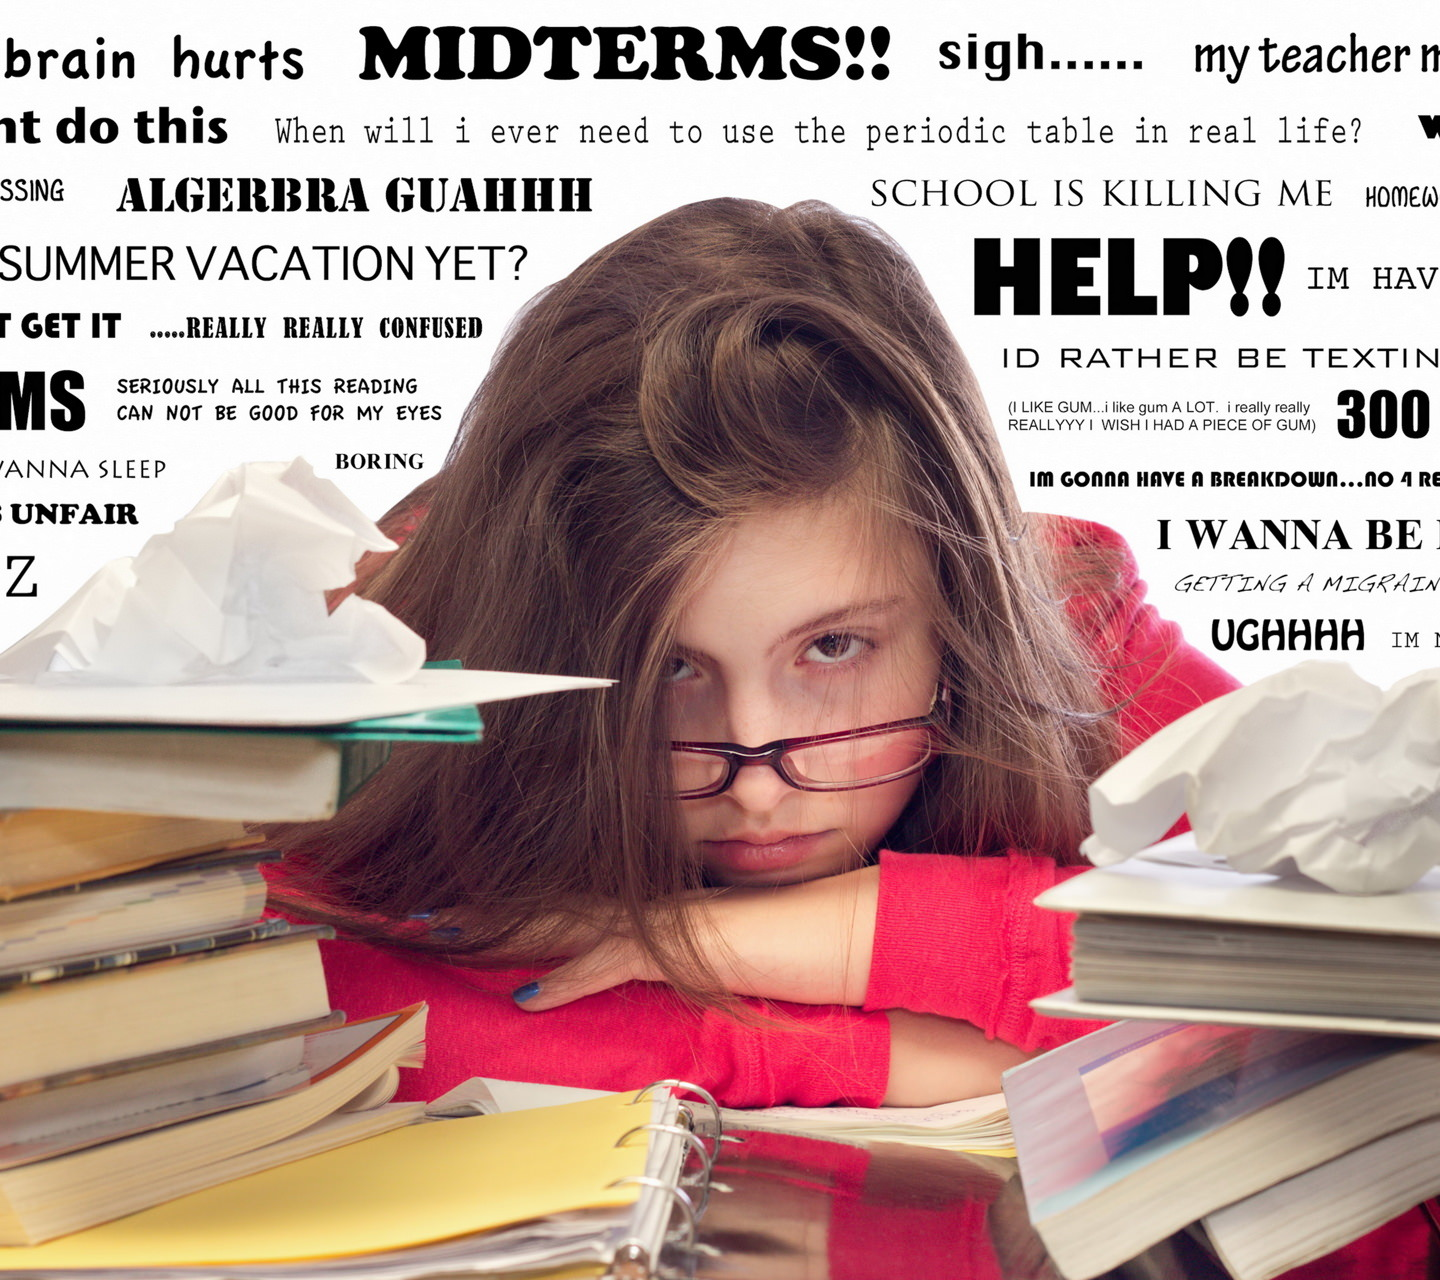 Midterms-Study-Hard-Wallpaper.jpg